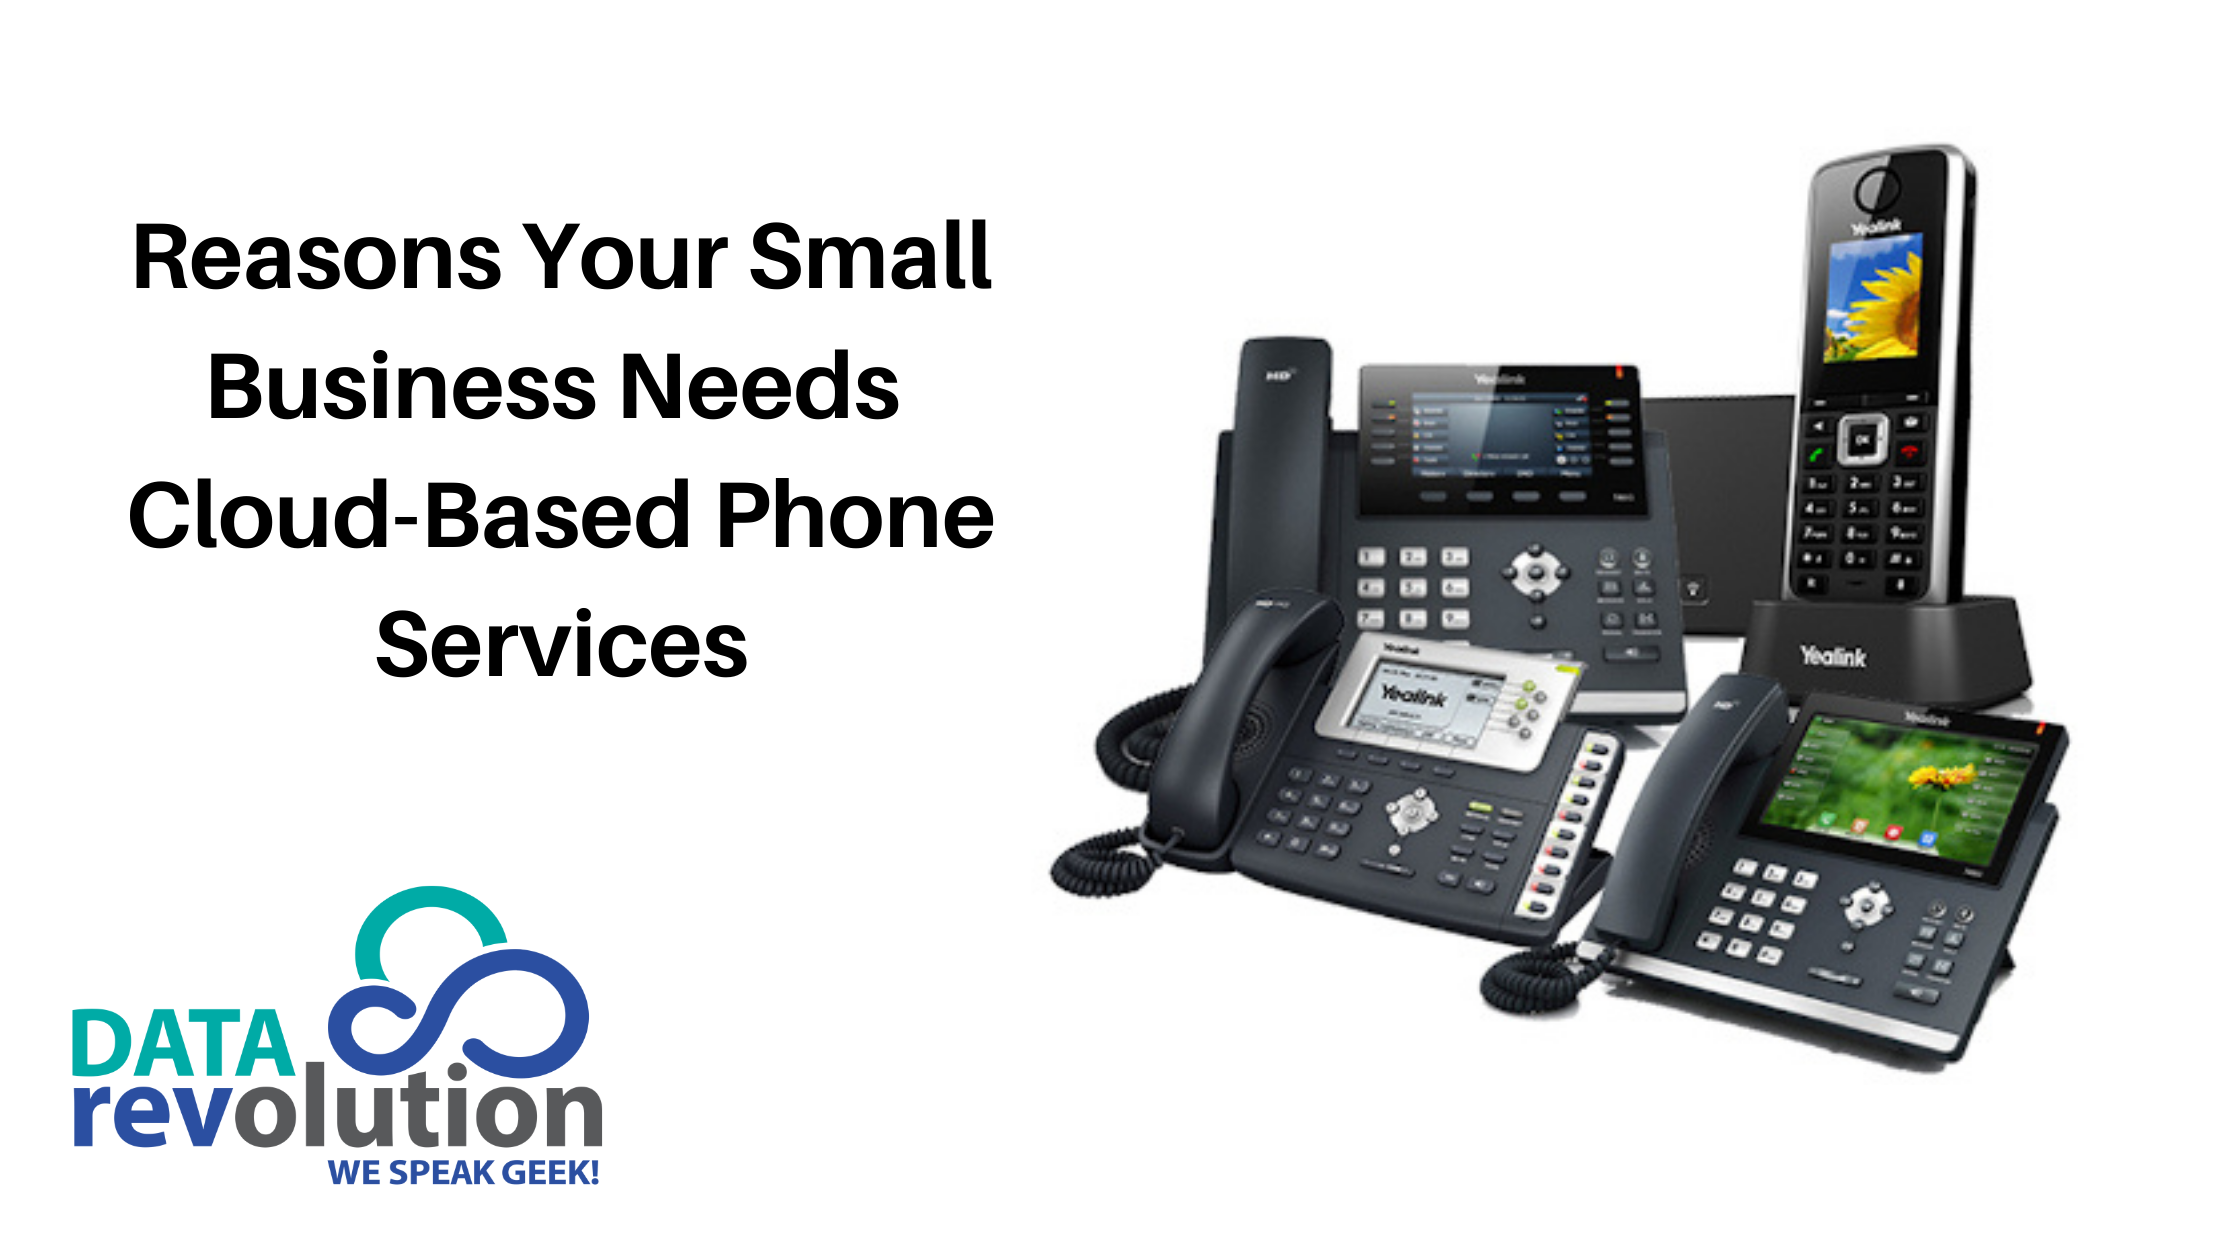 6 Reasons Your Small Business Needs Cloud-Based Phone Services